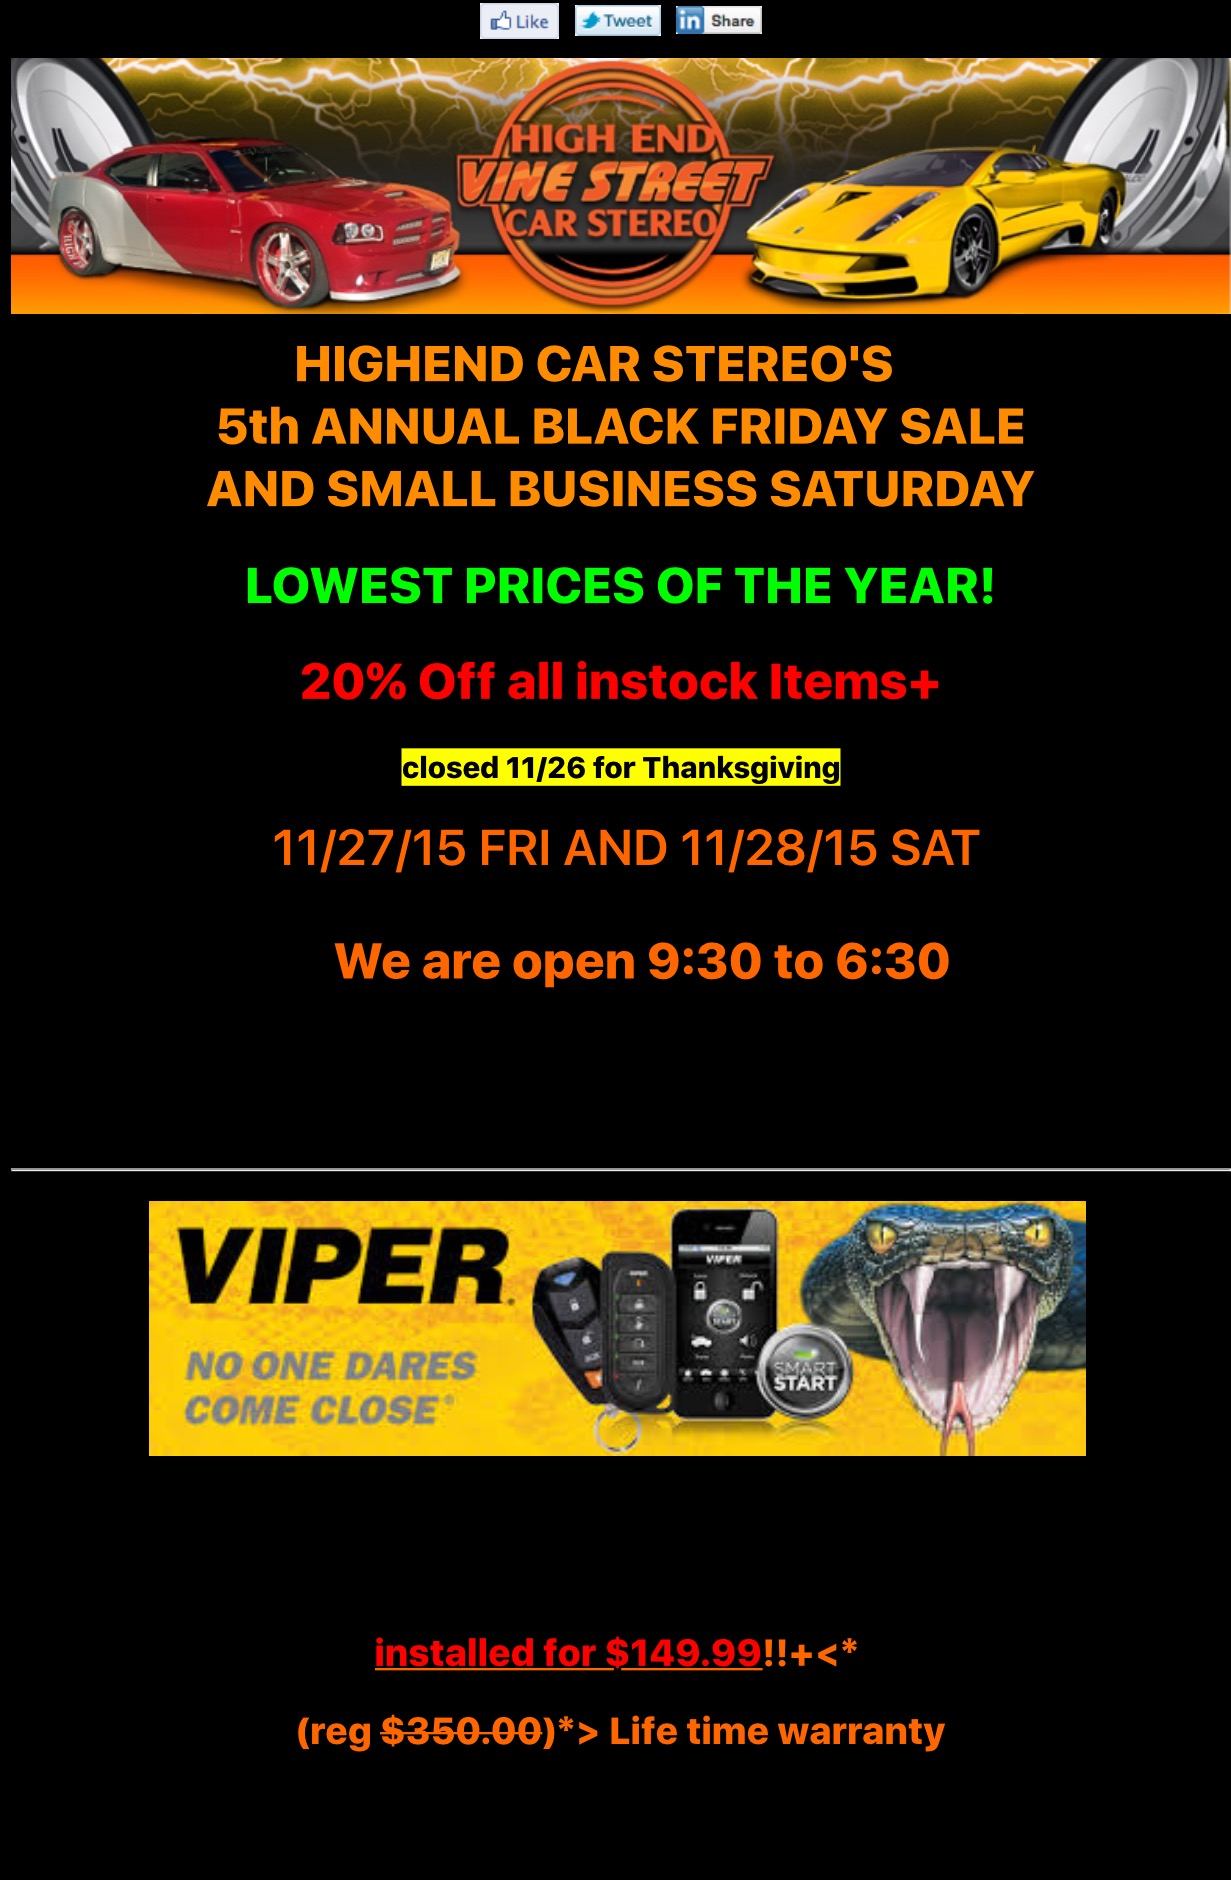 black friday and small business saturday sale in philadelphia high end car stereos alarms. Black Bedroom Furniture Sets. Home Design Ideas